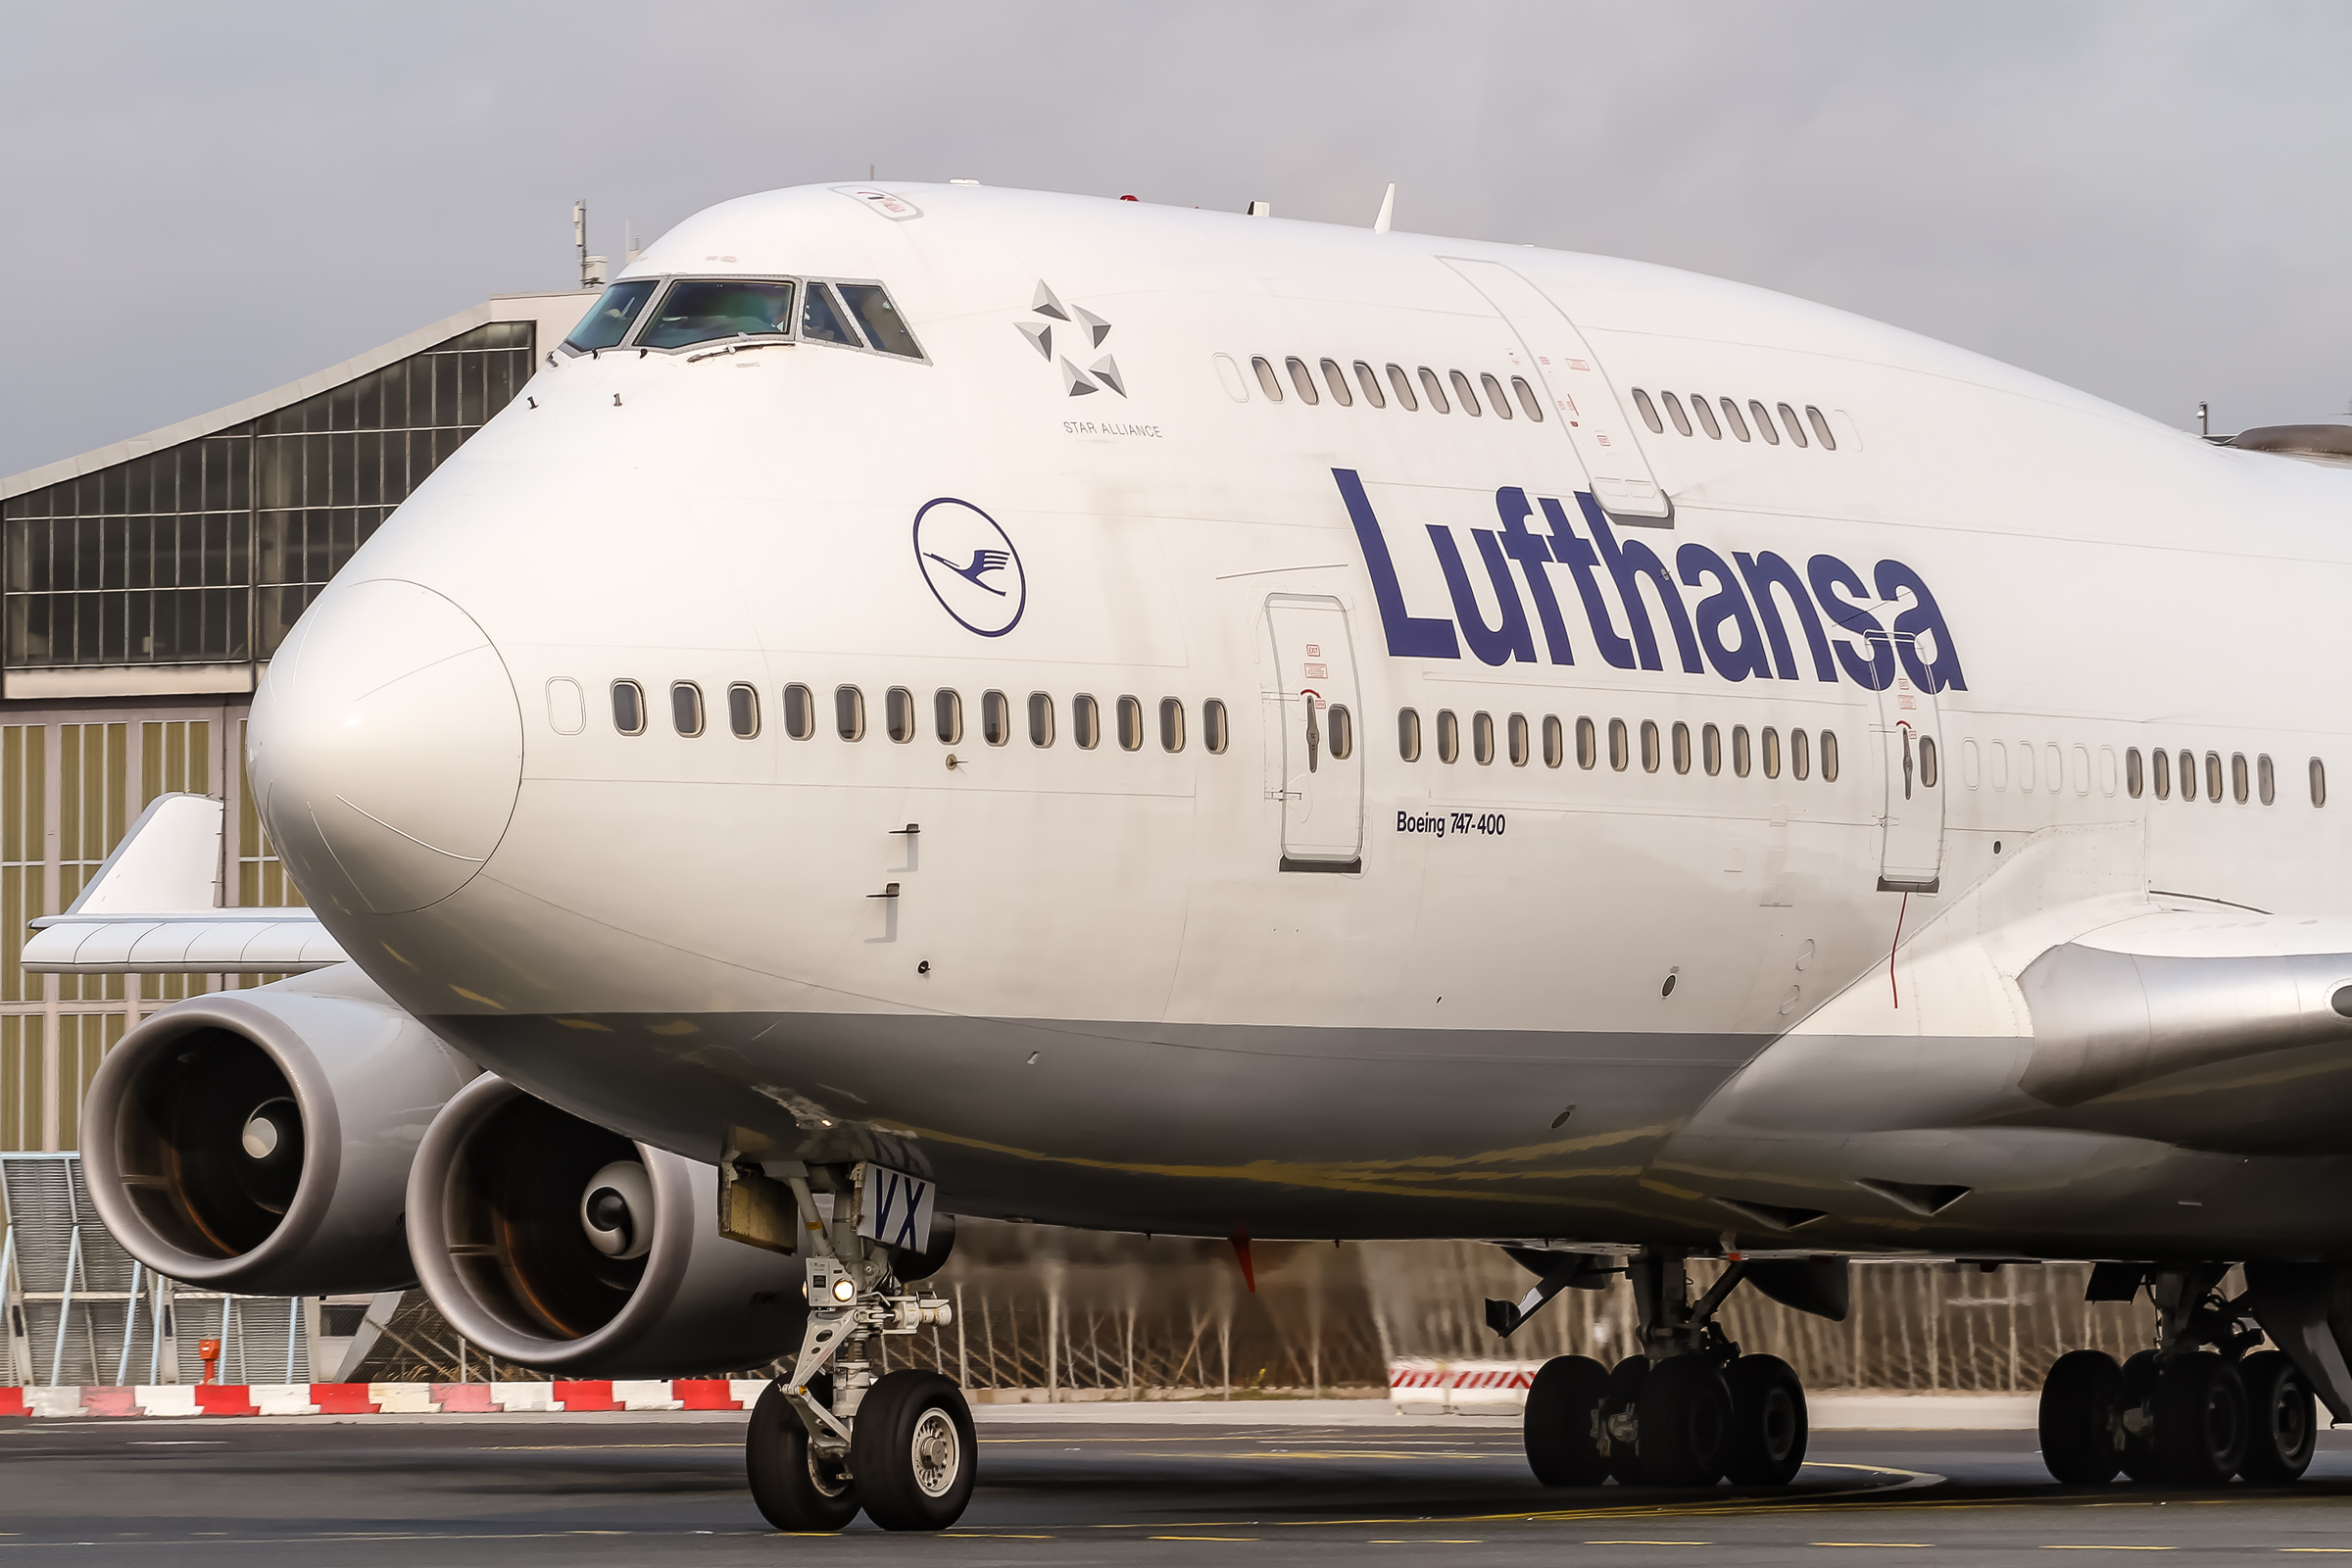 A Lufthansa plane was badly damaged in a fire on Monday at the Frankfurt Airport.